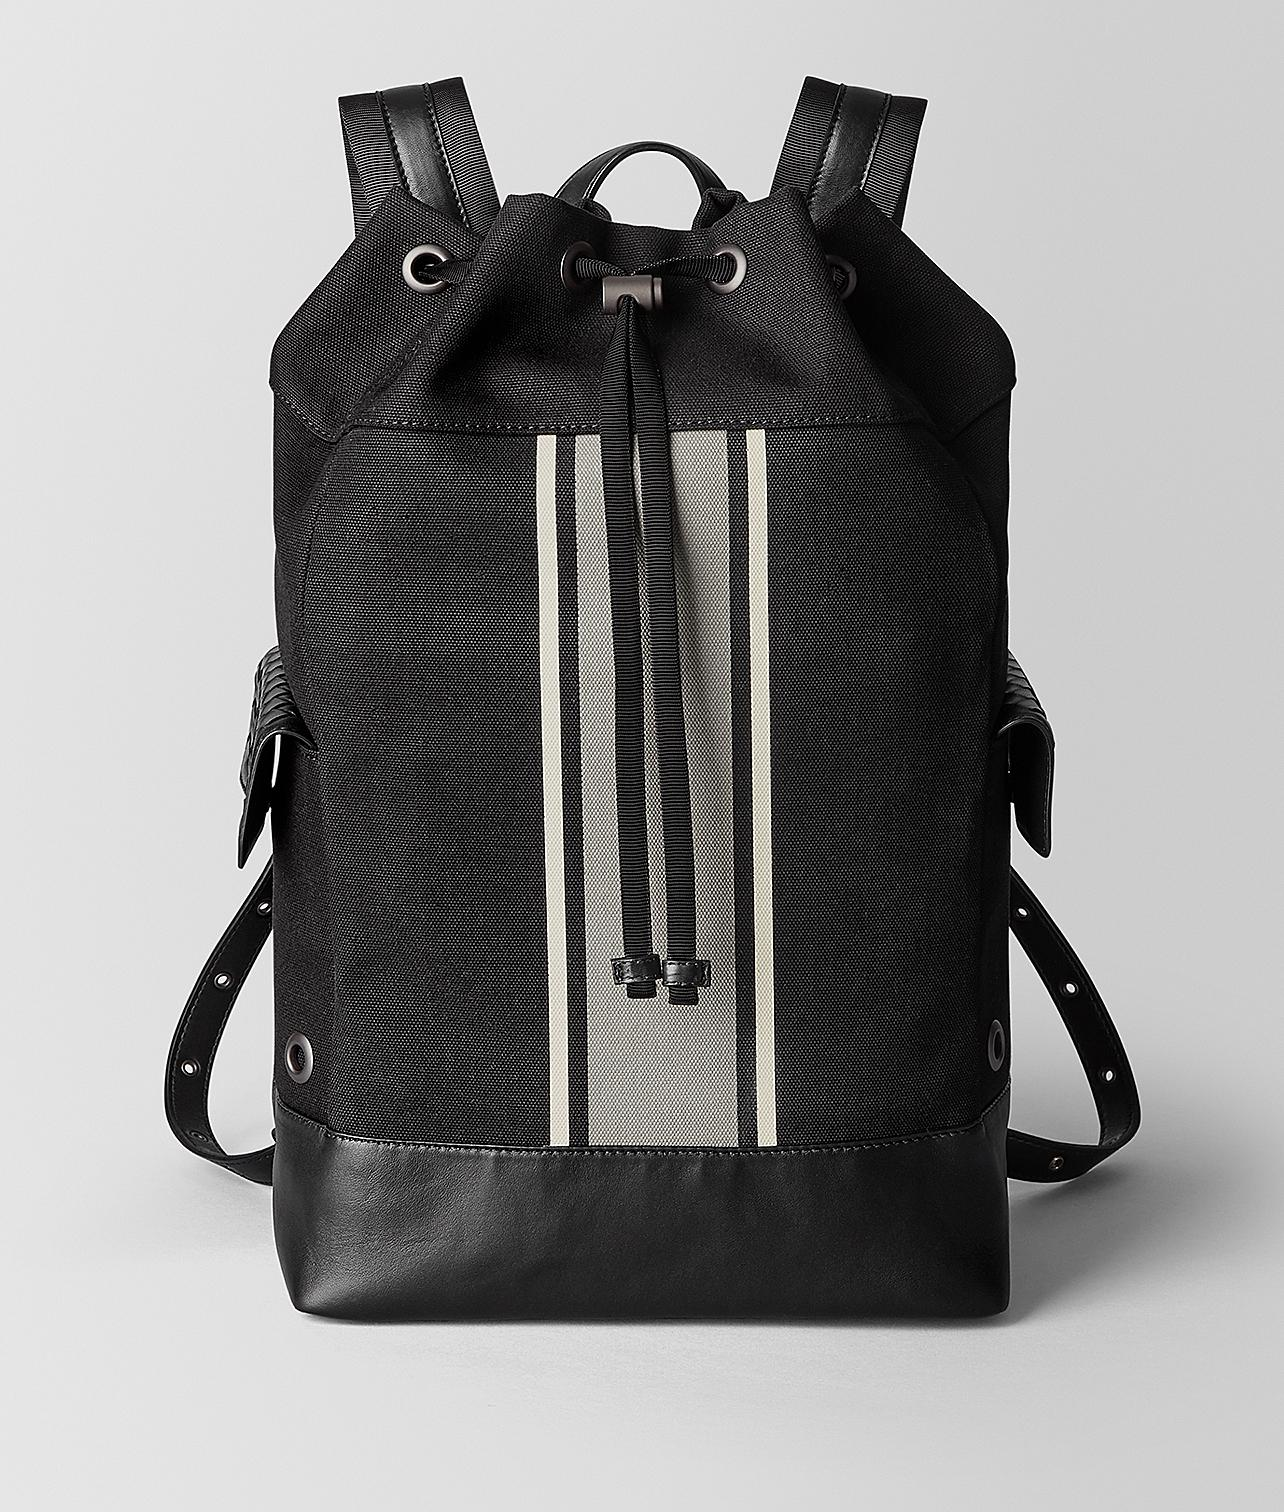 ebbc9efcda Bottega Veneta Nero cement Canvas Backpack in Black for Men - Lyst